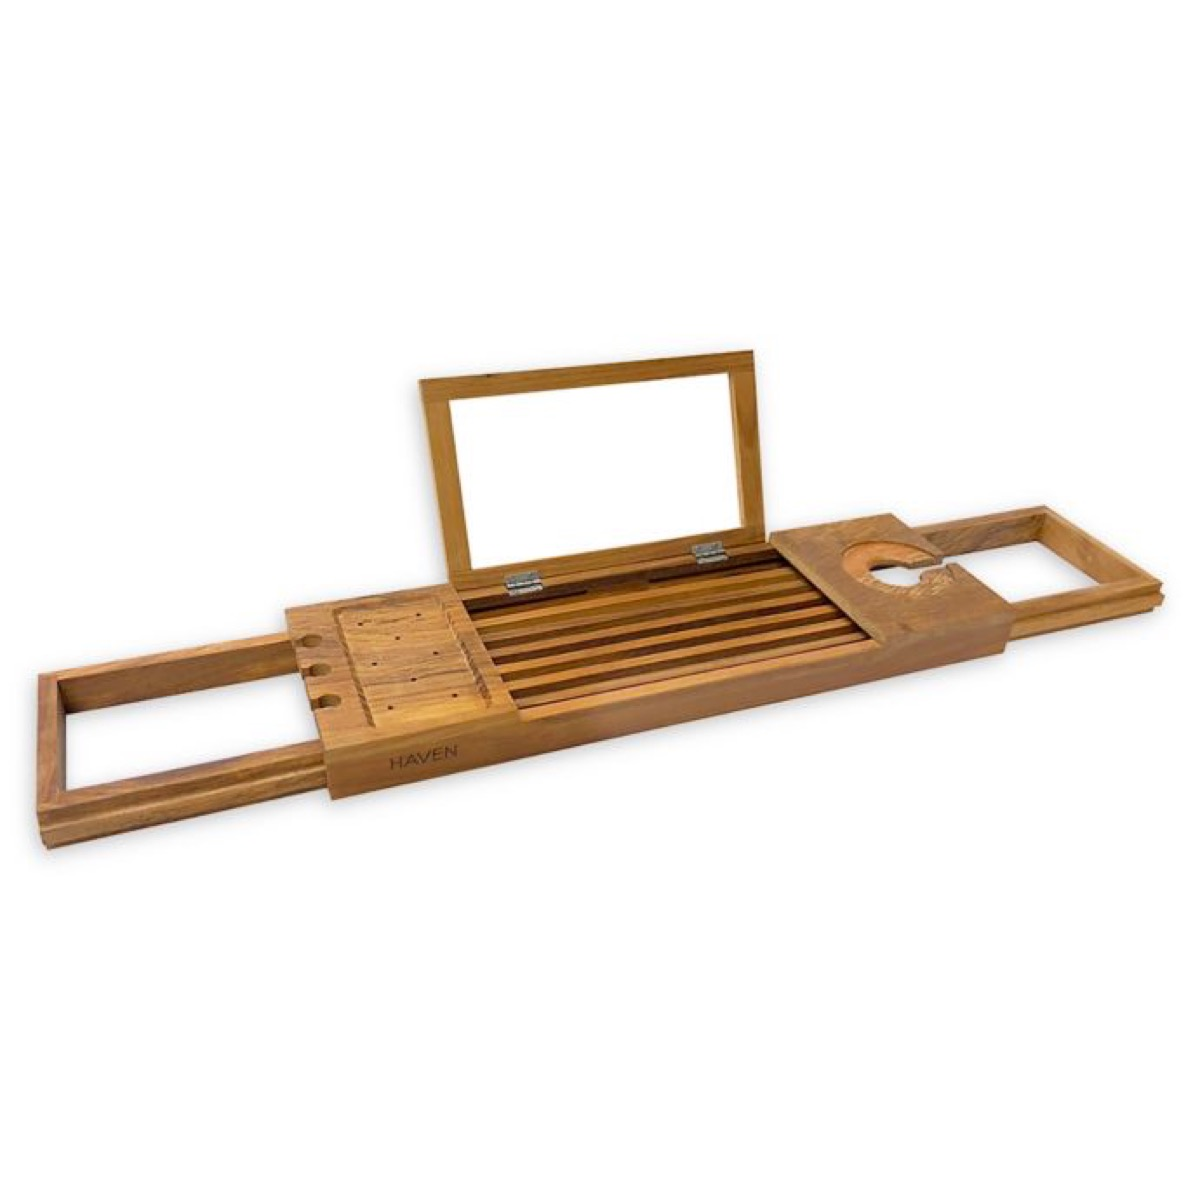 bed bath and beyond haven teak bathtub caddy, gifts for girlfriend